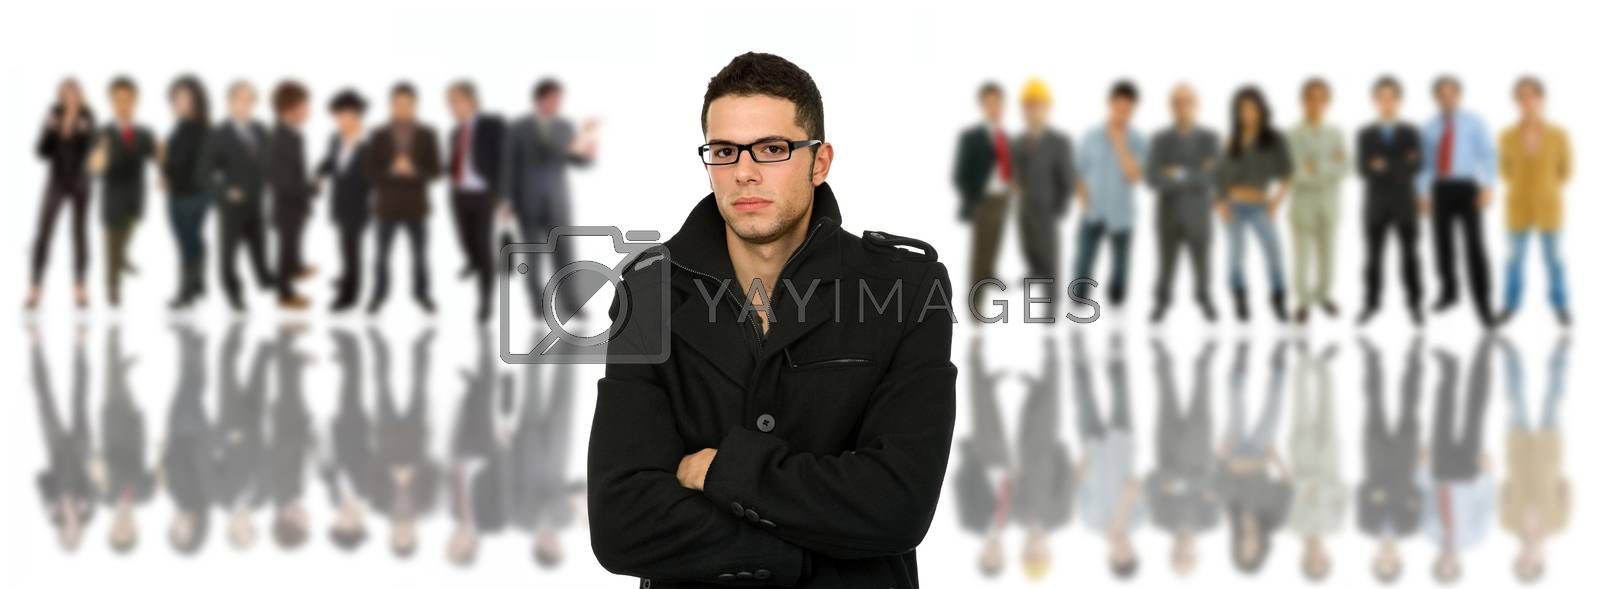 young casual man in front of a group of people